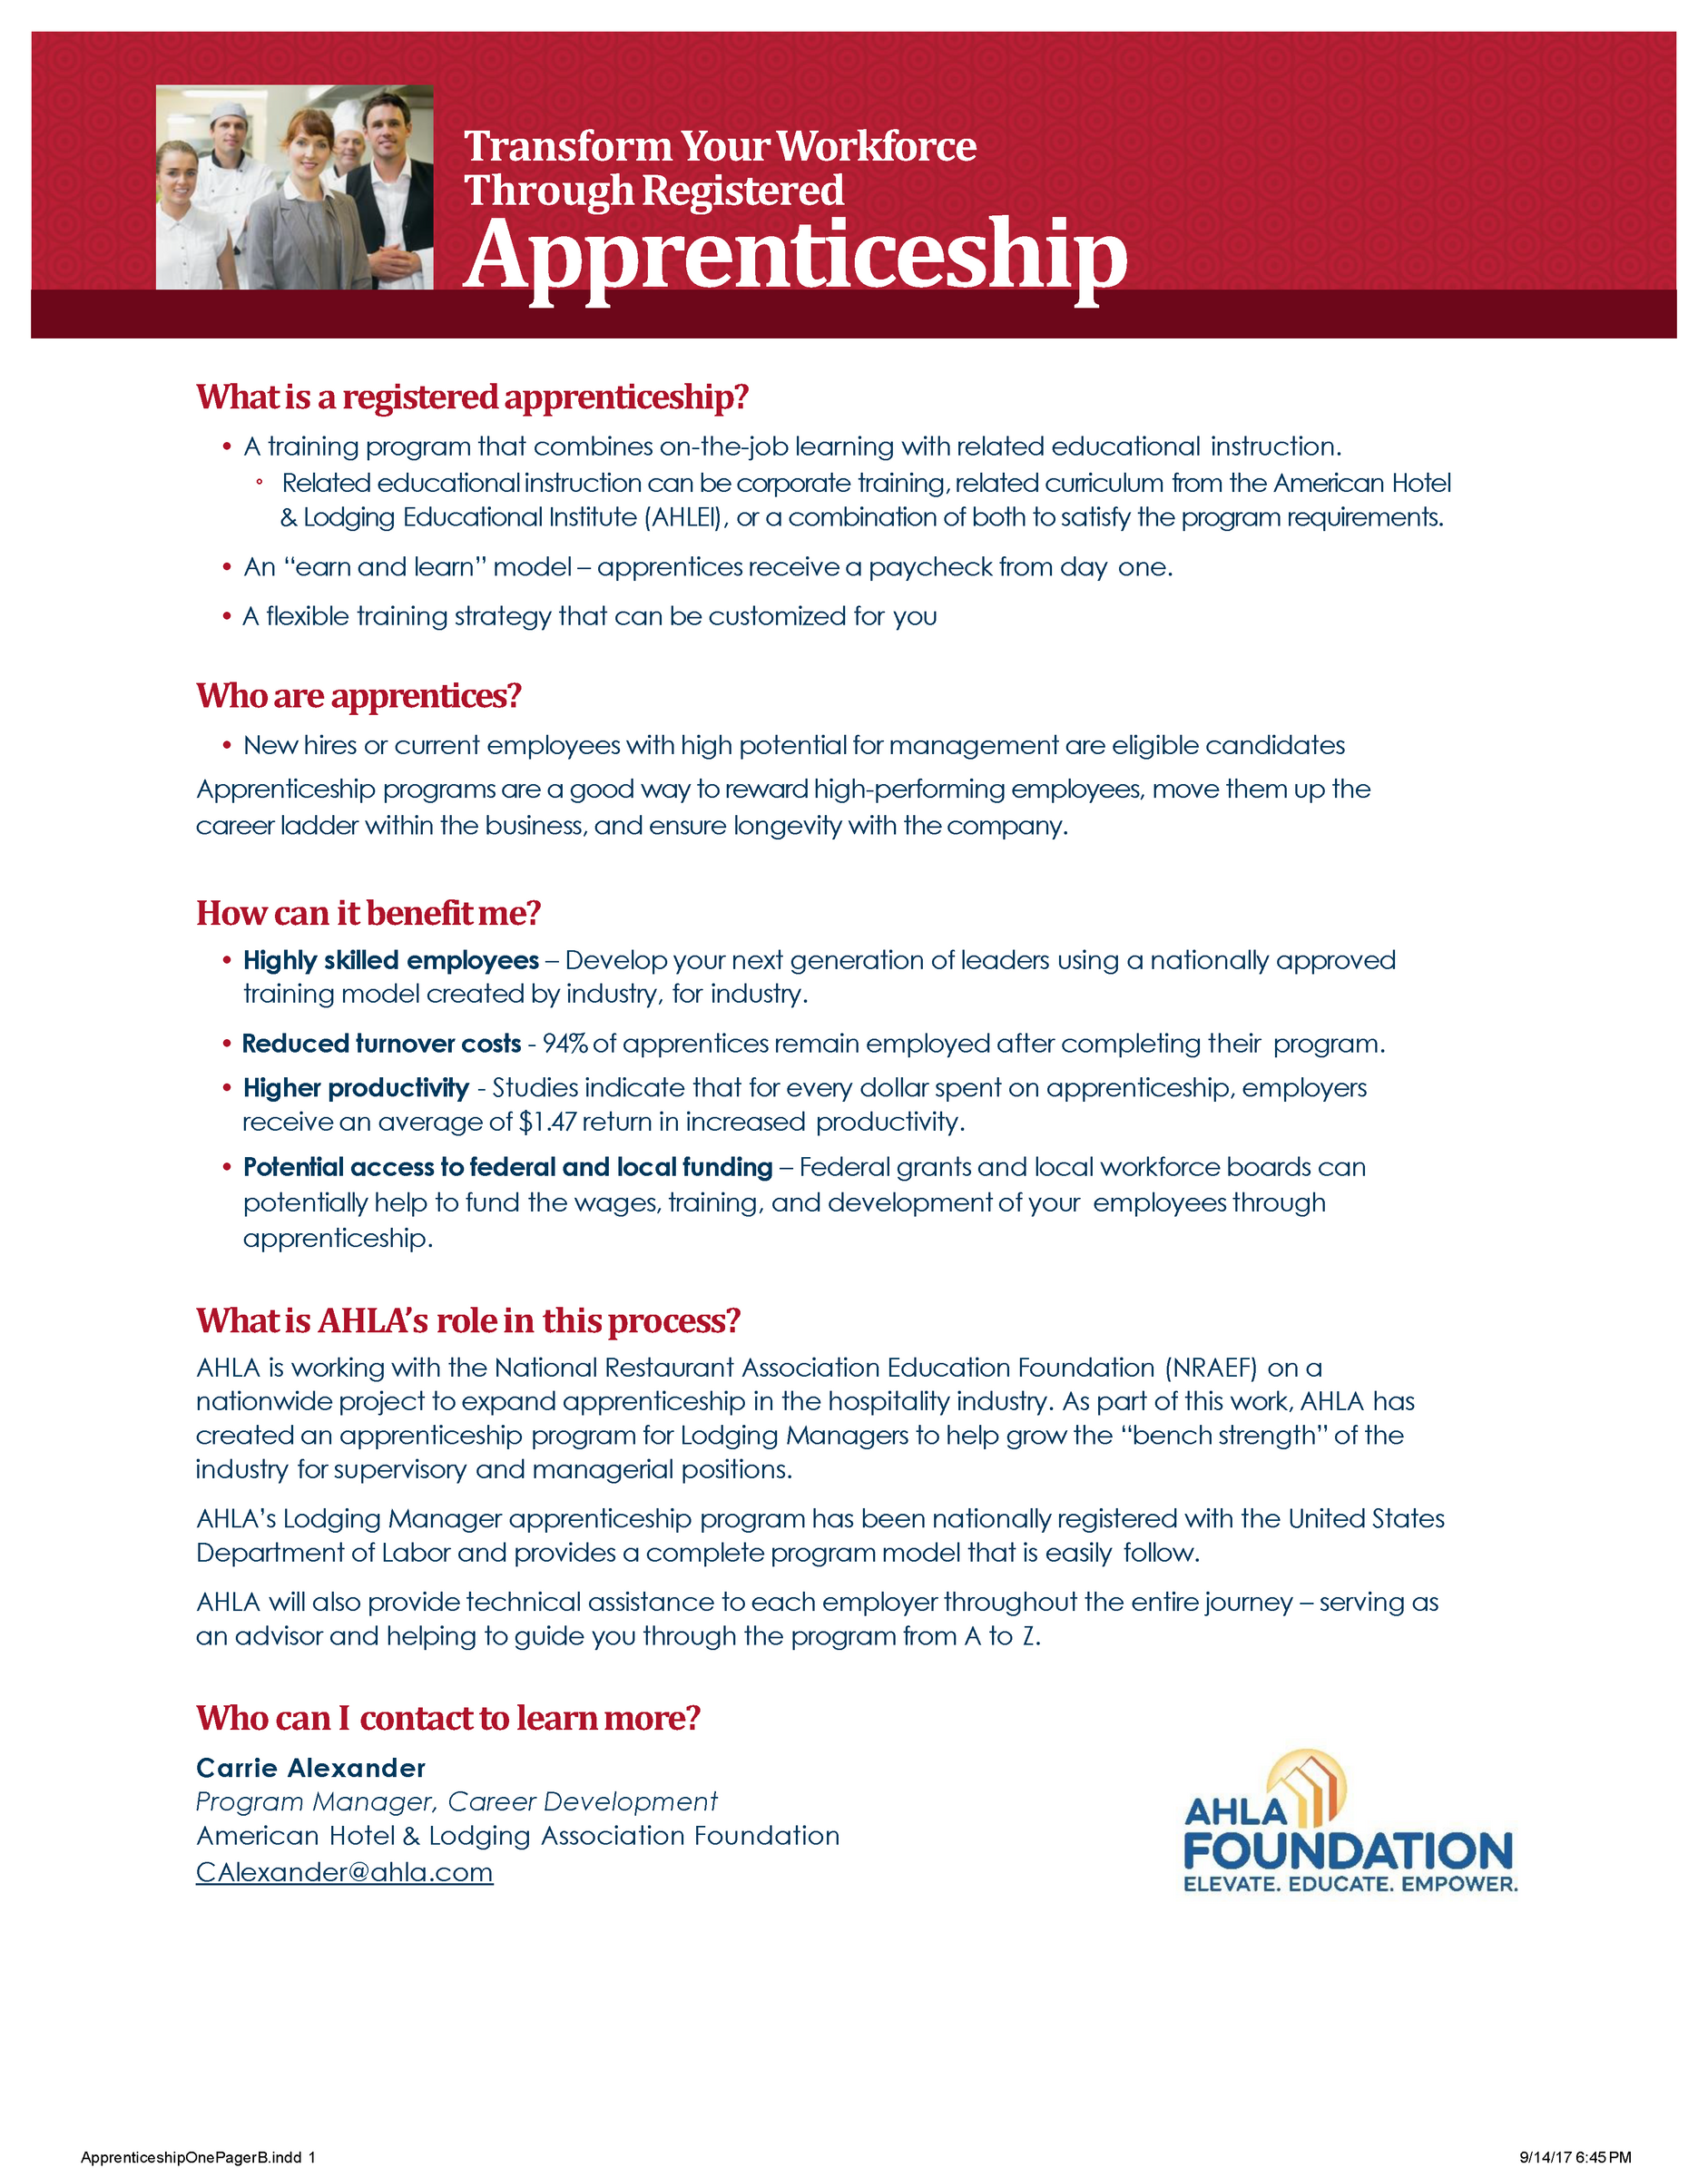 Apprenticeship One Pager Lodging Manager 2019